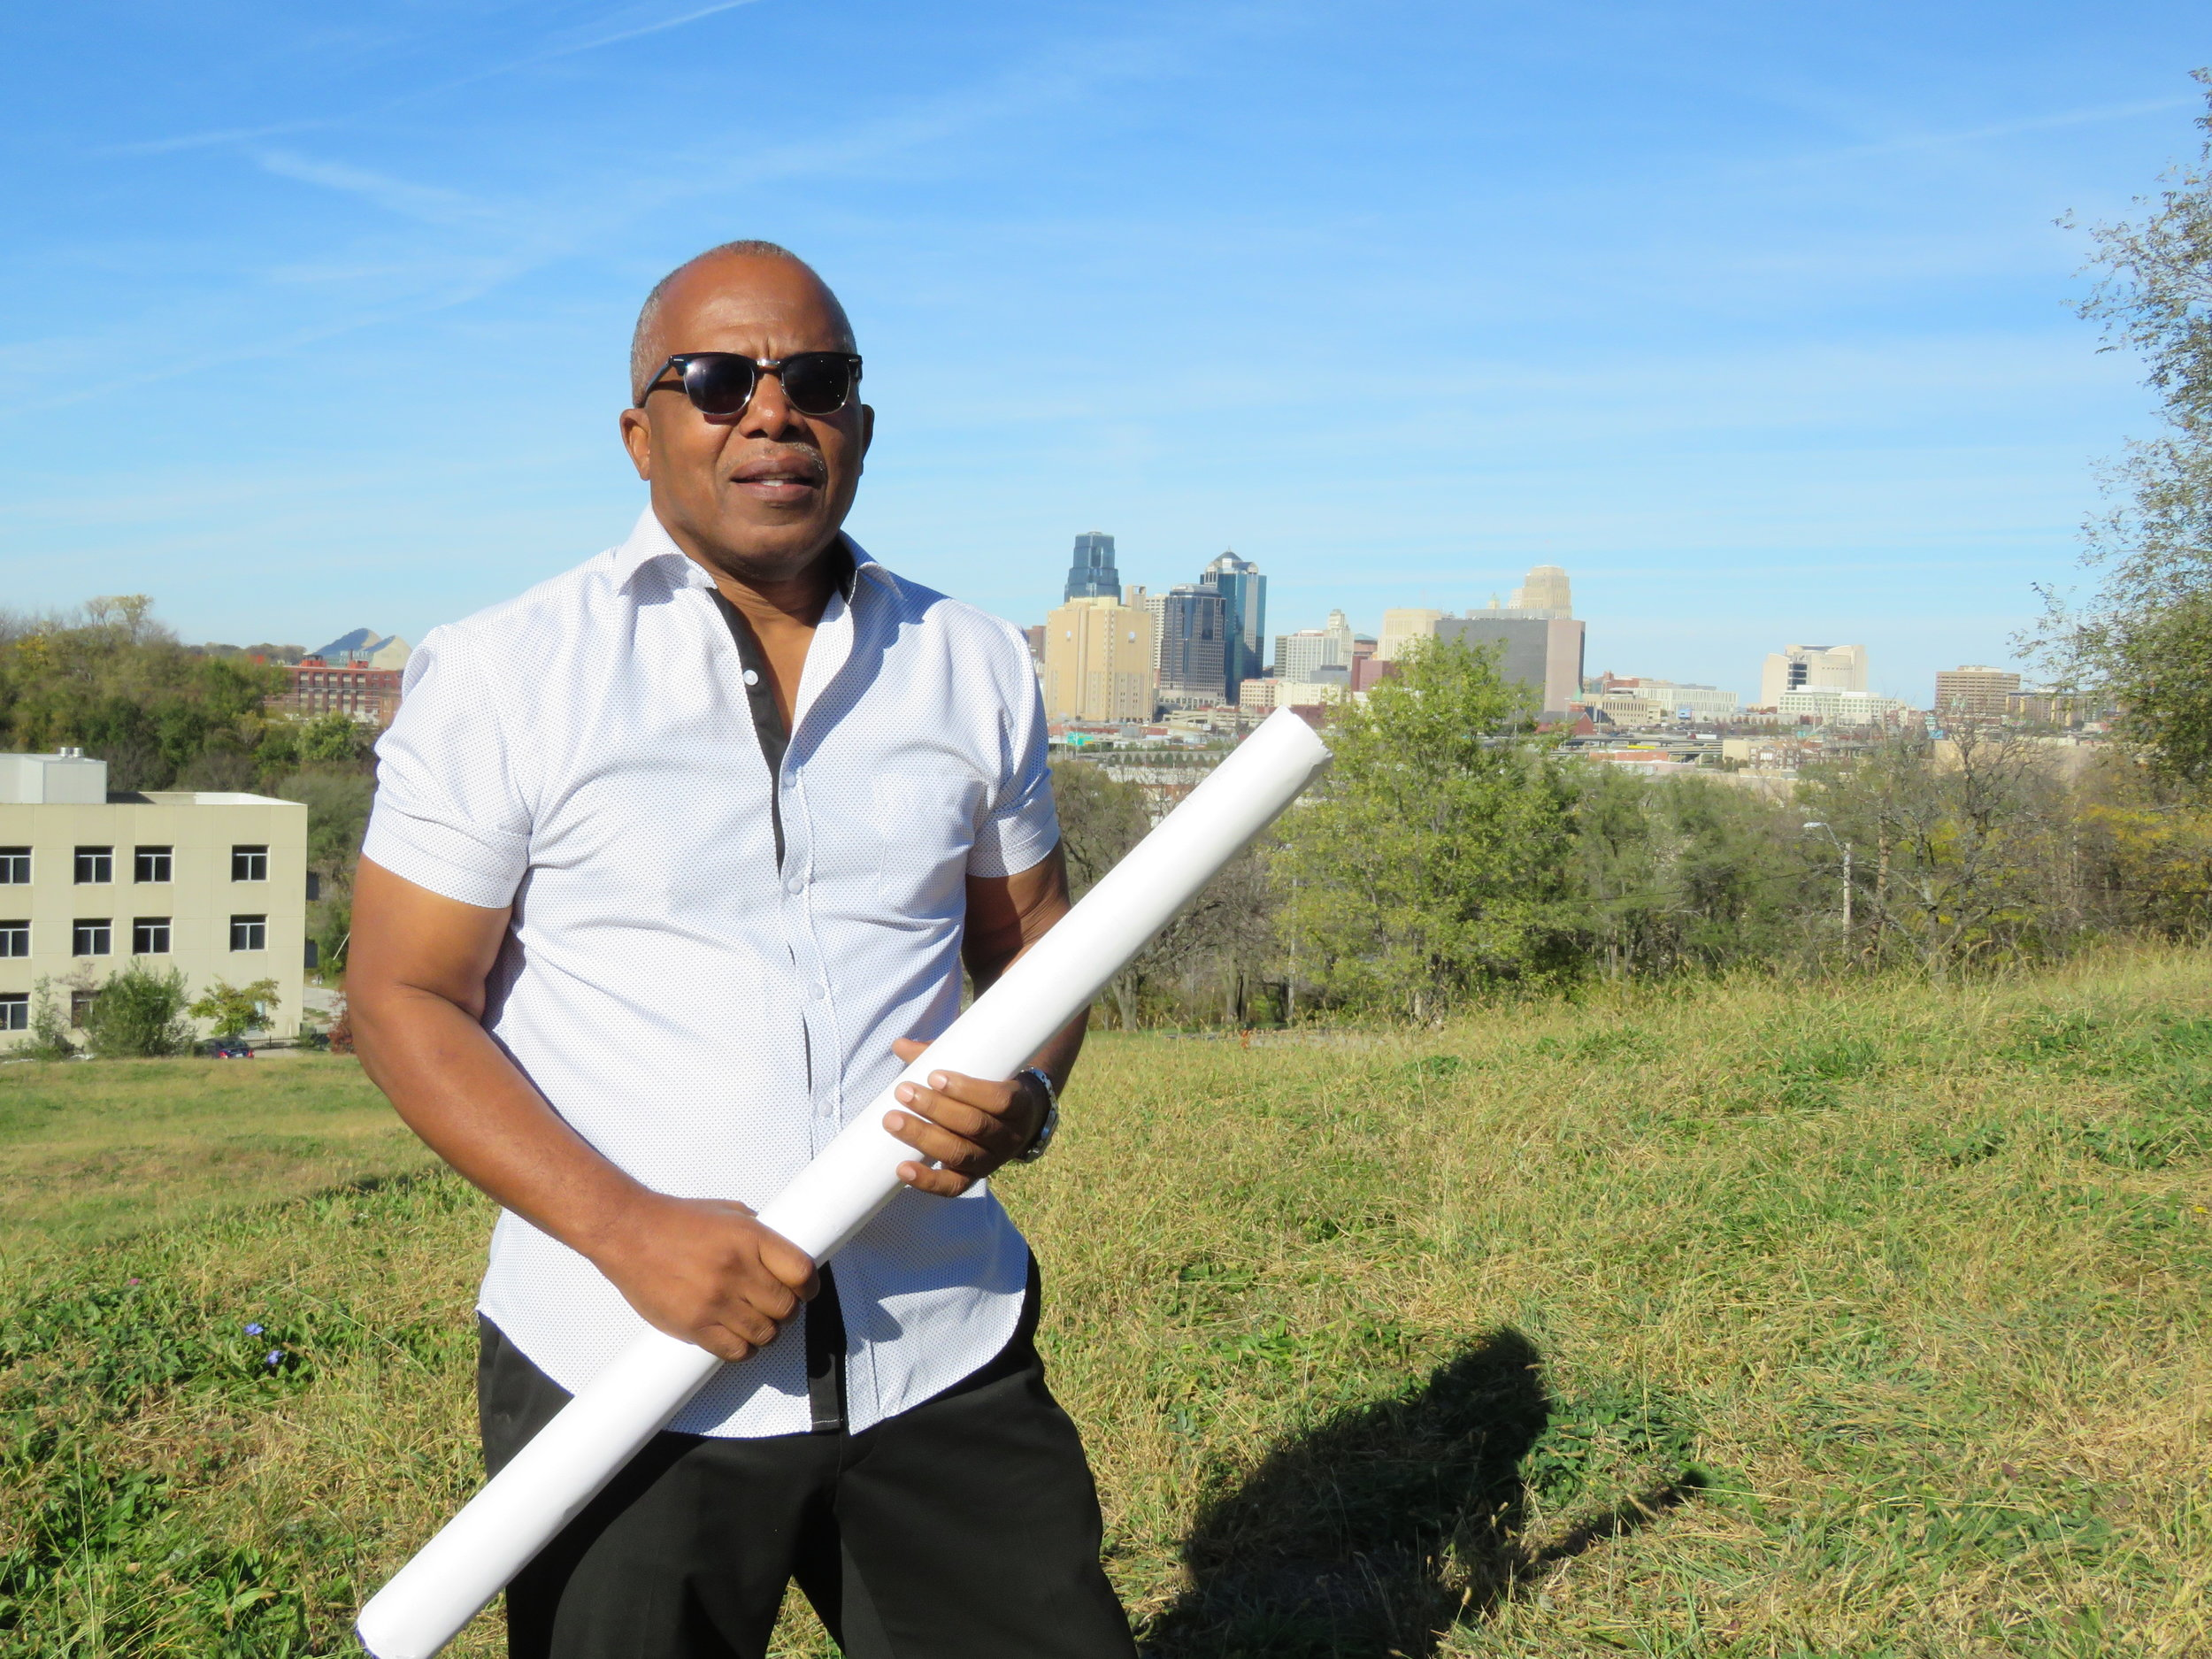 Vewiser Dixon, a successful businessman in Kansas City, wants to turn 22 acres of vacant land into a startup community tailored toward black and brown entrepreneurs.  LISA RODRIGUEZ  | KCUR